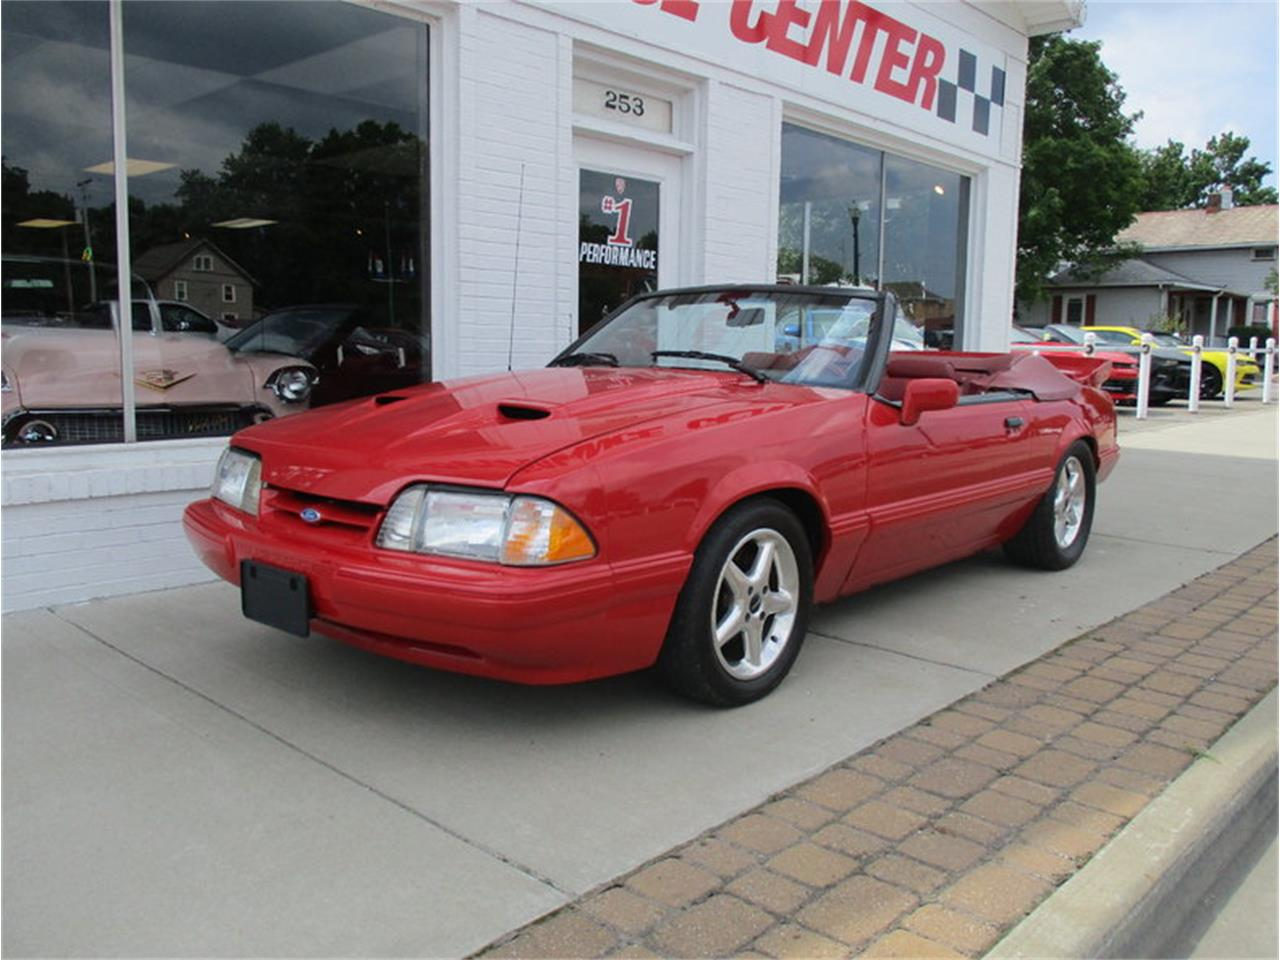 Donnell Ford Boardman >> 1988 Ford Mustang for Sale | ClassicCars.com | CC-1043453